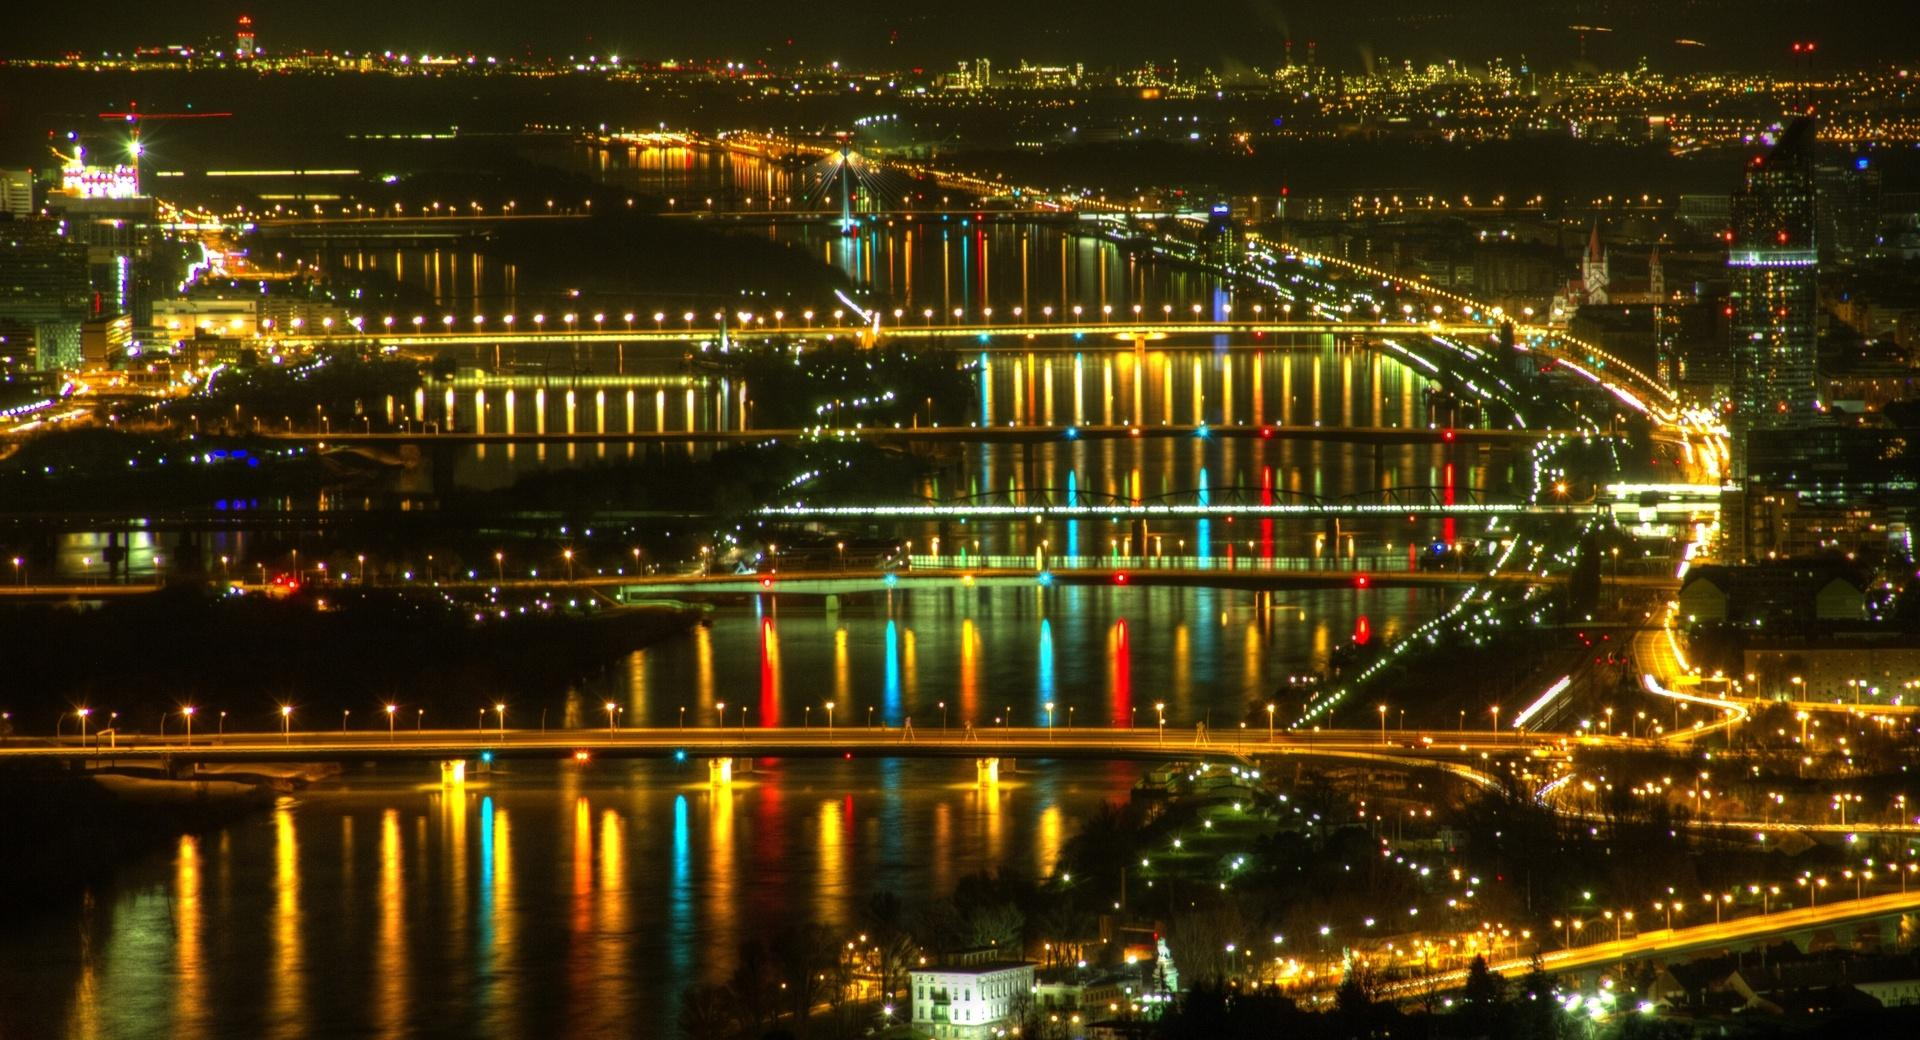 Lights at Danube, Vienna wallpapers HD quality